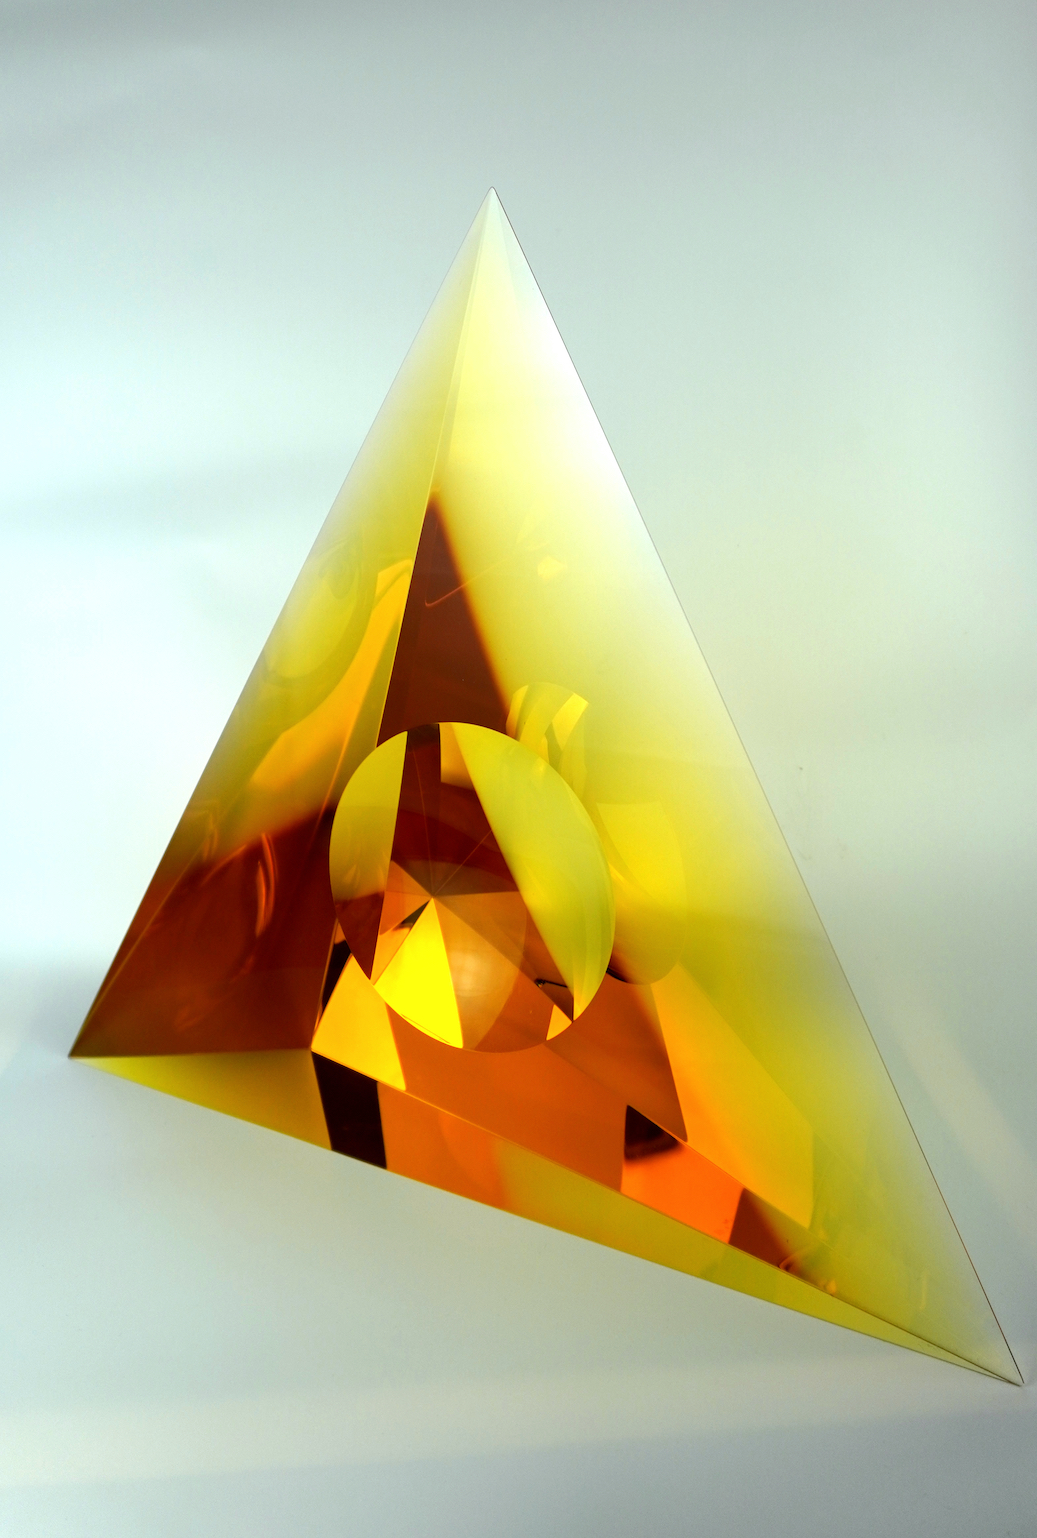 Andrej jakab yellow pyramid2